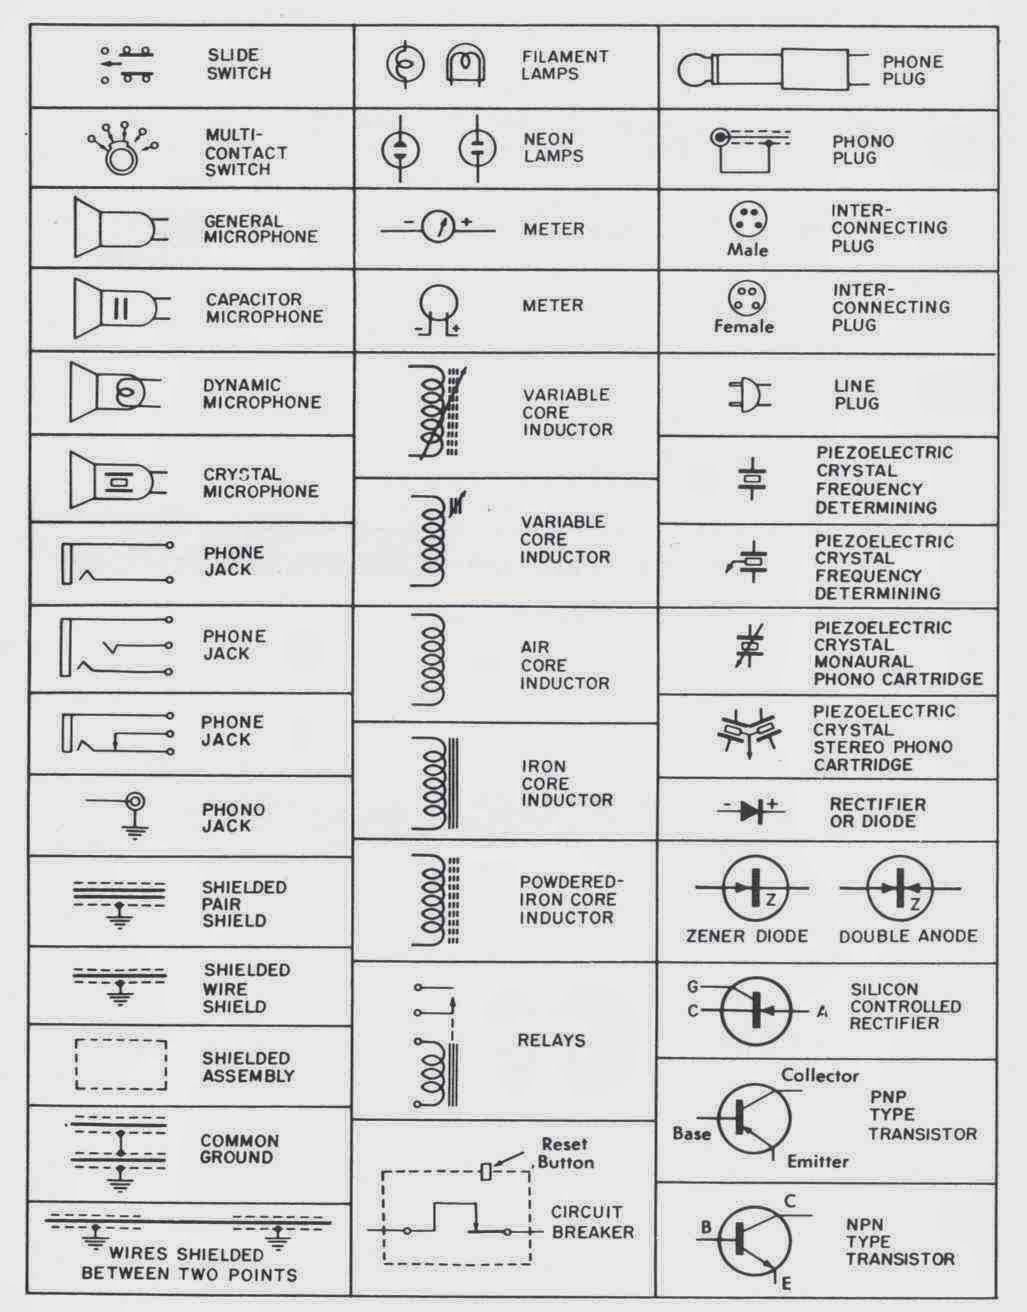 electronic diagram symbols and abbreviations lab value electrical 11 engineering pics